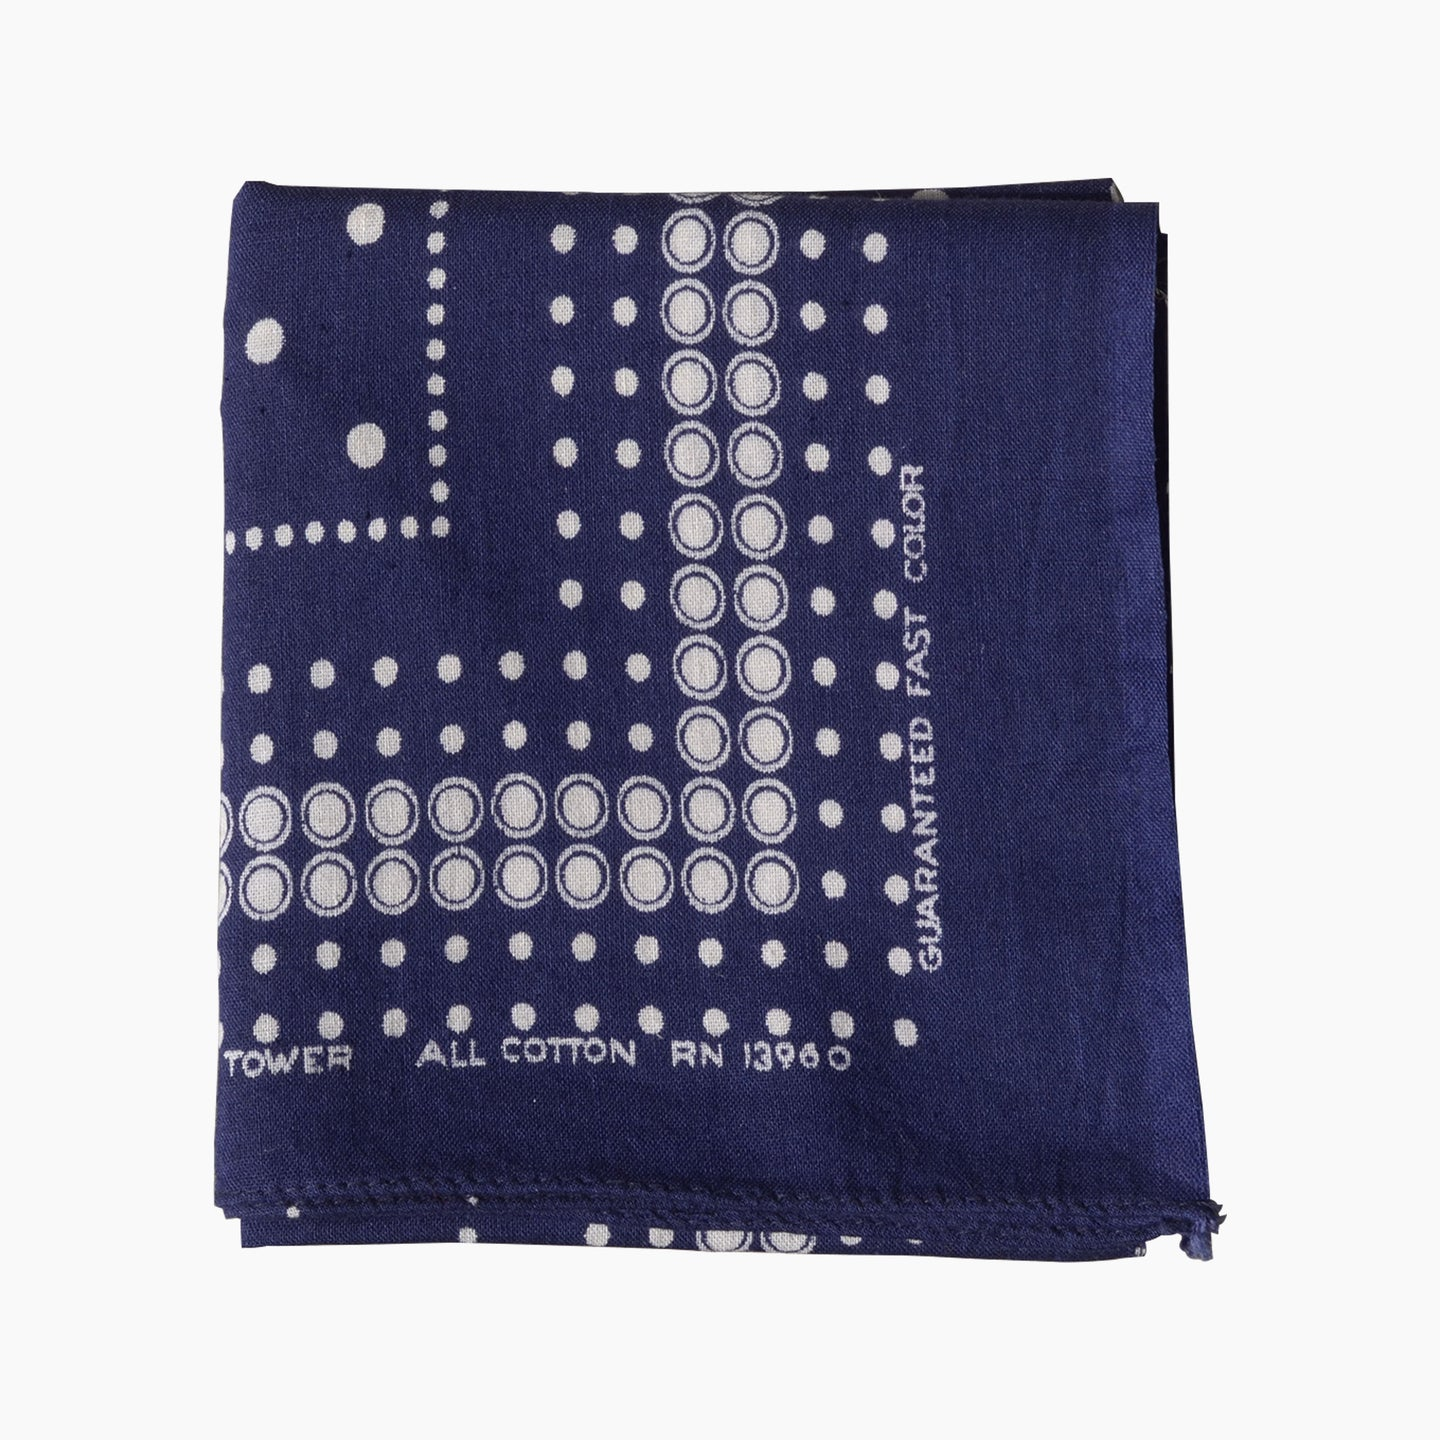 Tower - Polka Dot Cotton Bandana